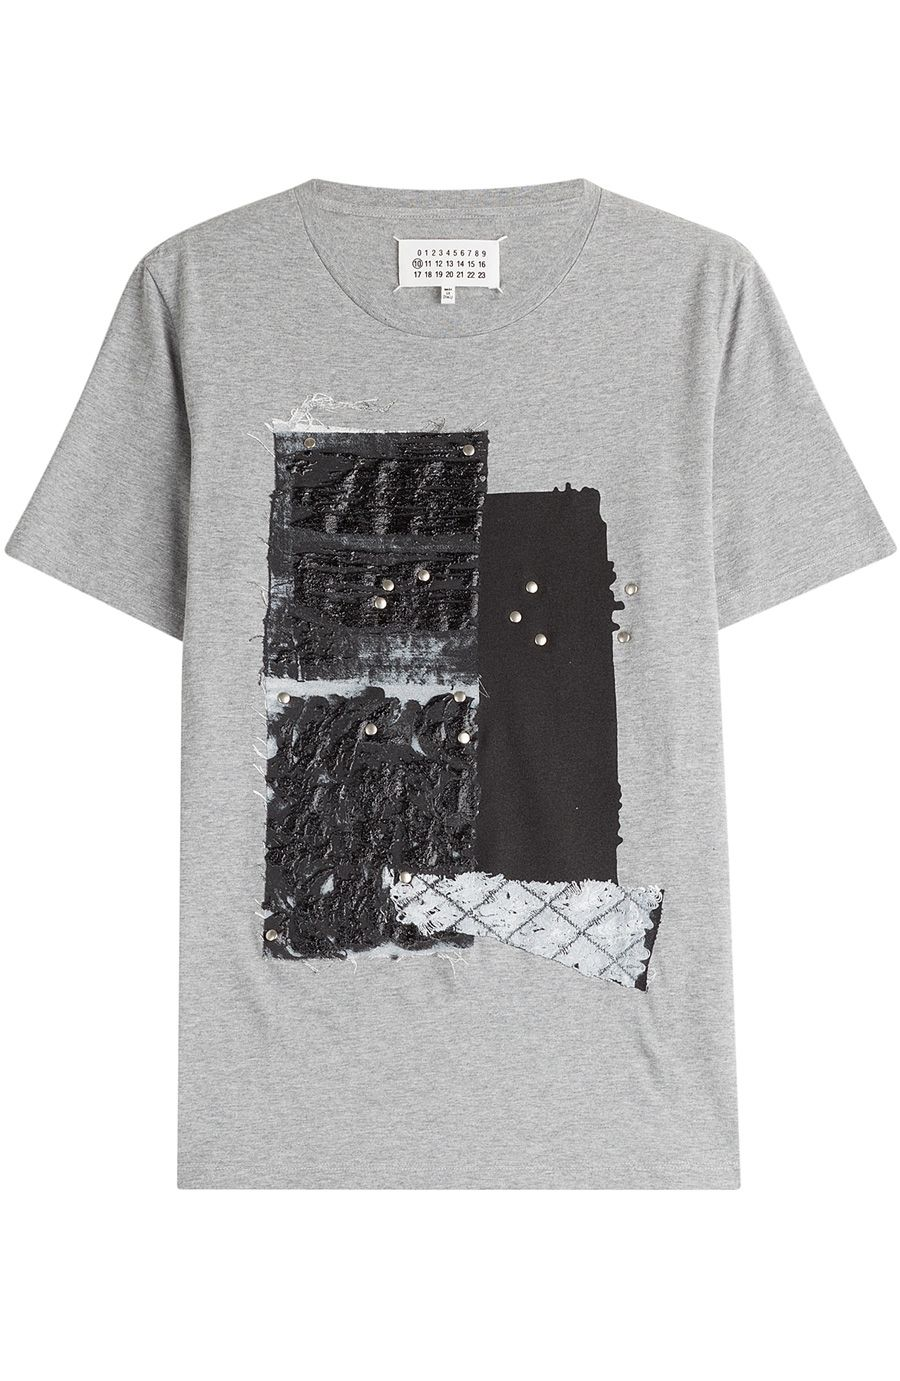 Maison Margiela Printed Cotton T Shirt Maisonmargiela Cloth T